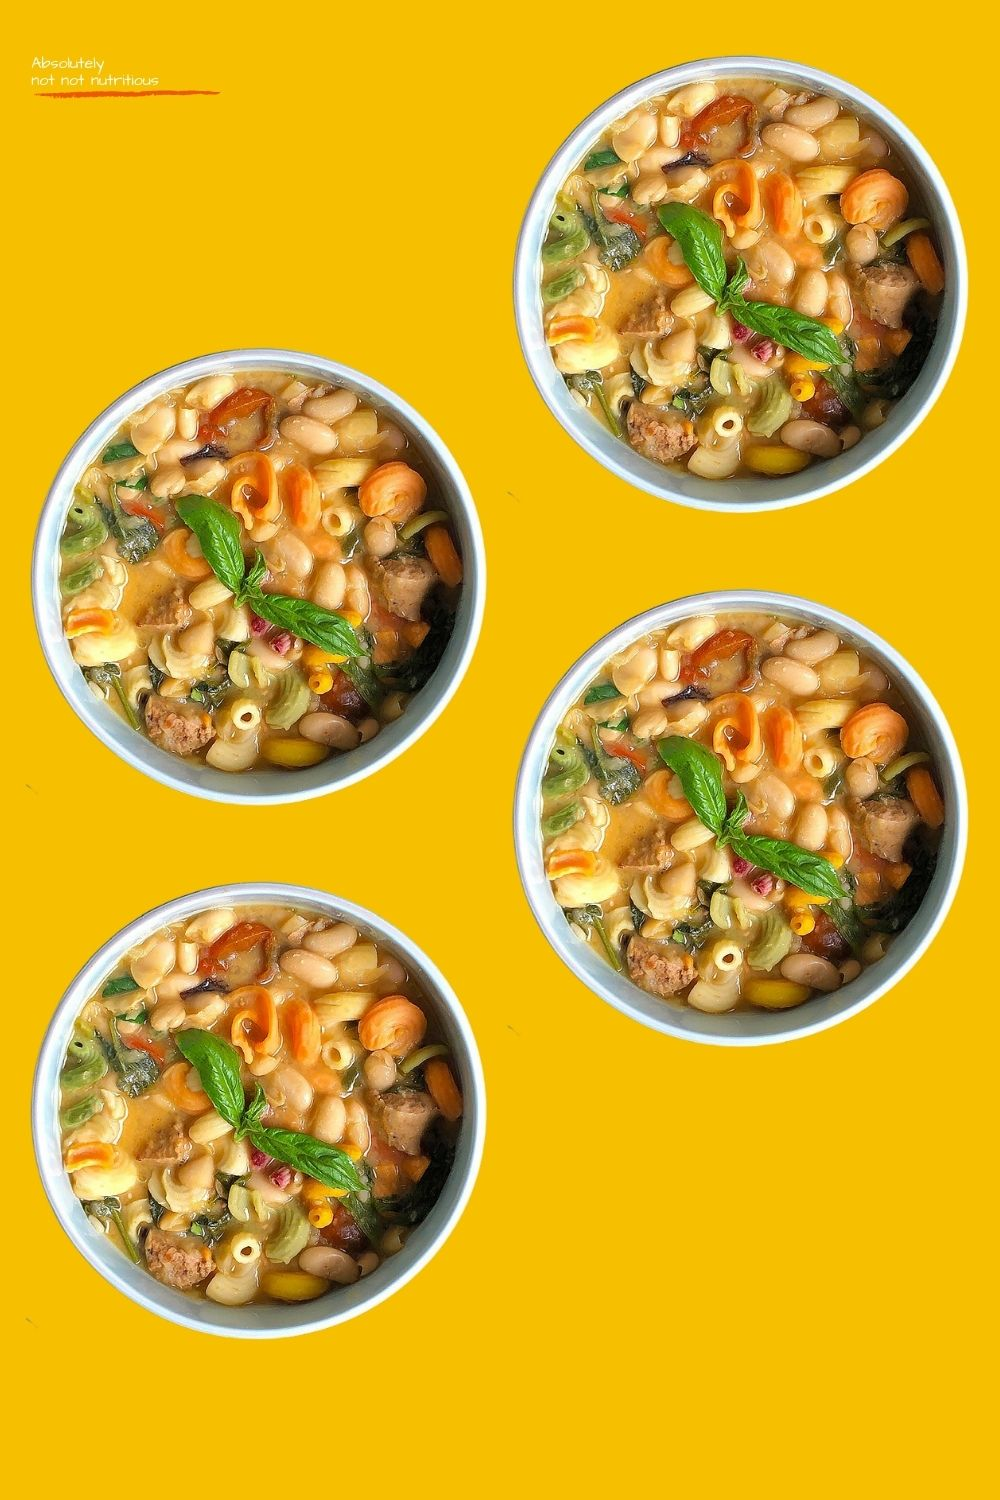 Top-down view of 4 soup bowls against a gold background. Soup is made from white beans, garlic, cherry tomatoes, leafy greens, pasta, and vegetable broth. Soup is garnished with a sprig of basil. Text on top-left corner of image reads Absolutely not not nutritious